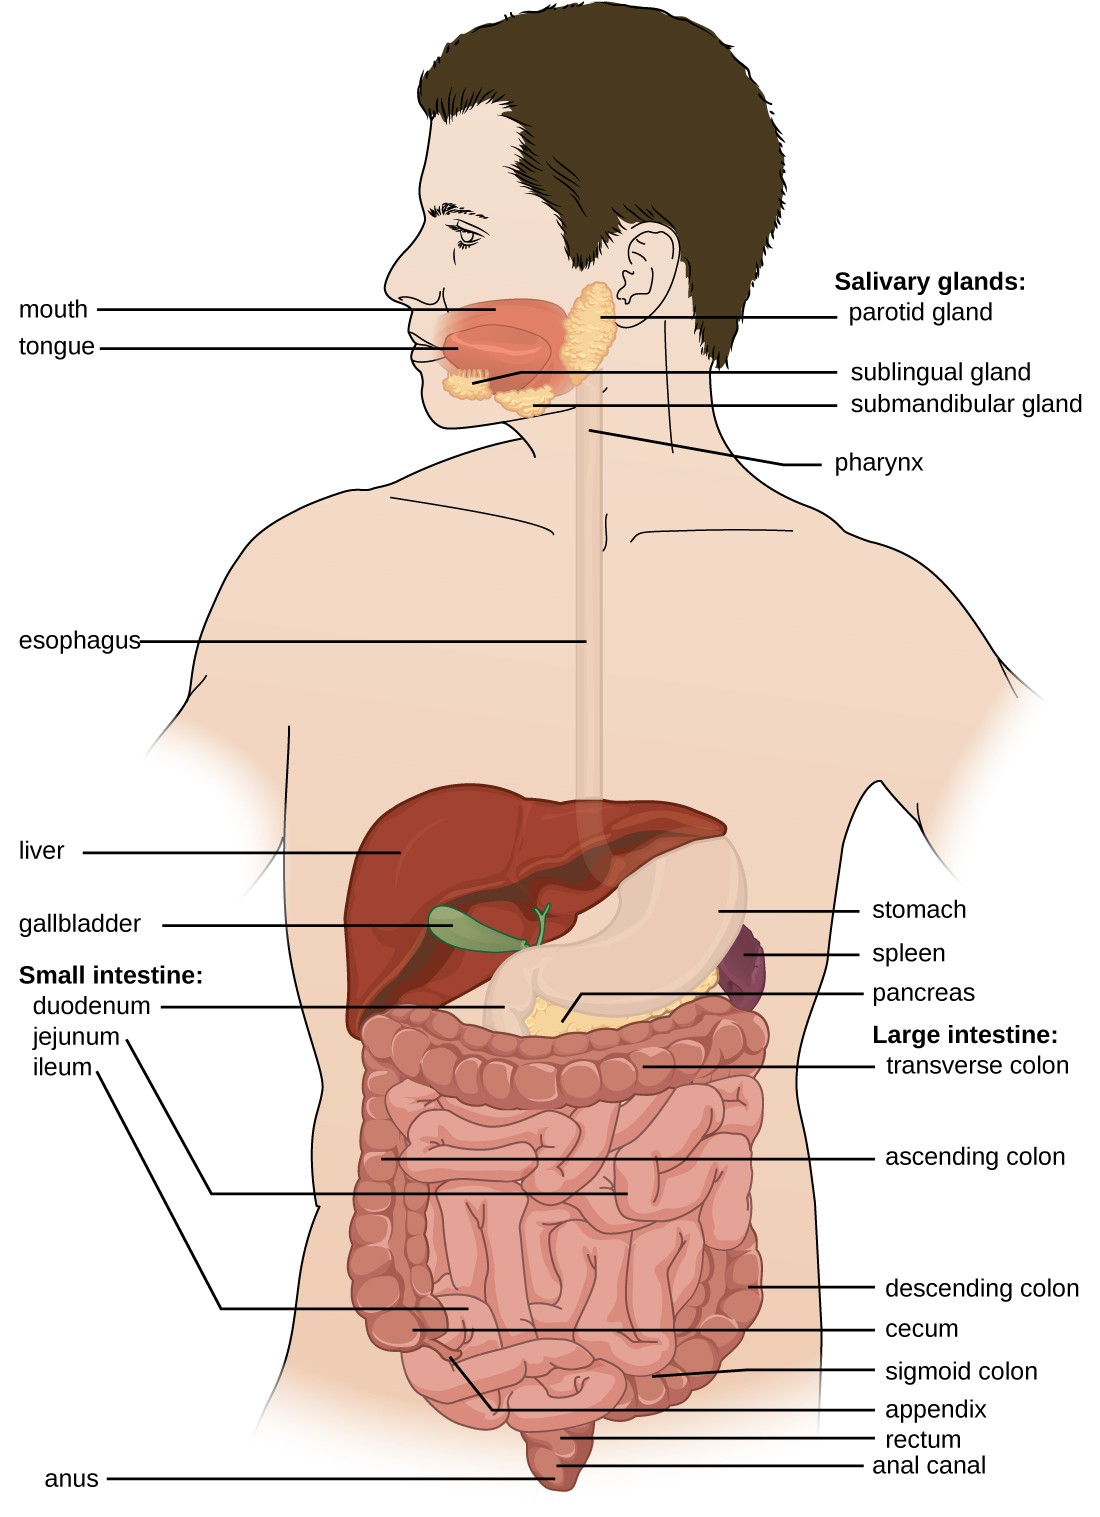 Diagram Of The Digestive System Anatomy And Normal Microbiota Of The Digestive System Microbiology